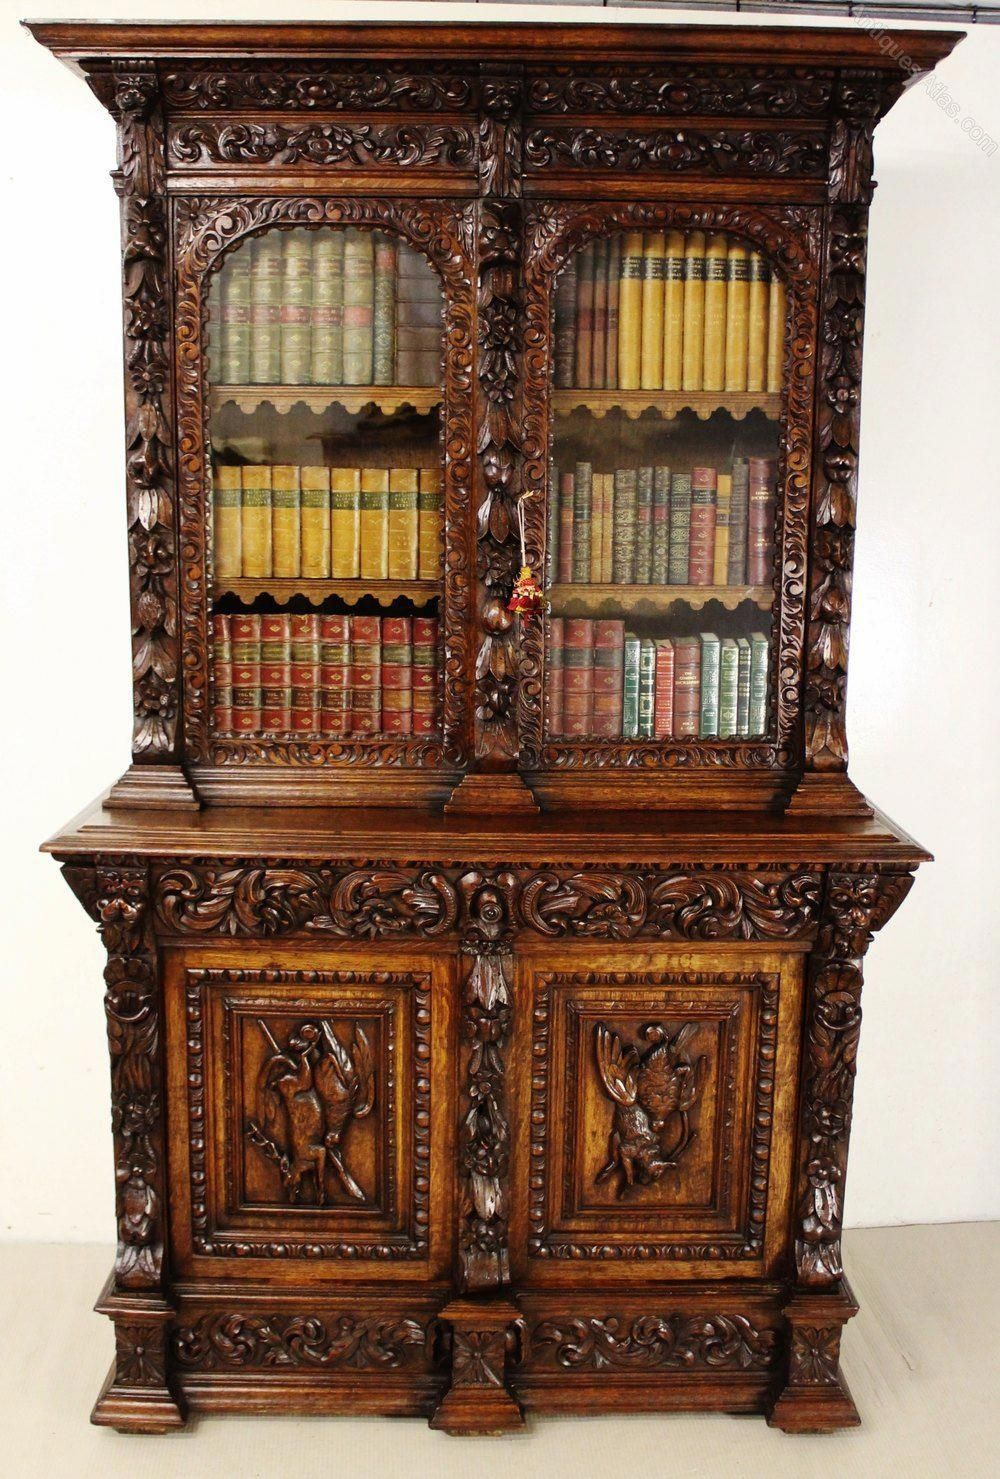 Prices Of Antique Furniture Best Of Colonial Furniture Vintage Furniture Prices